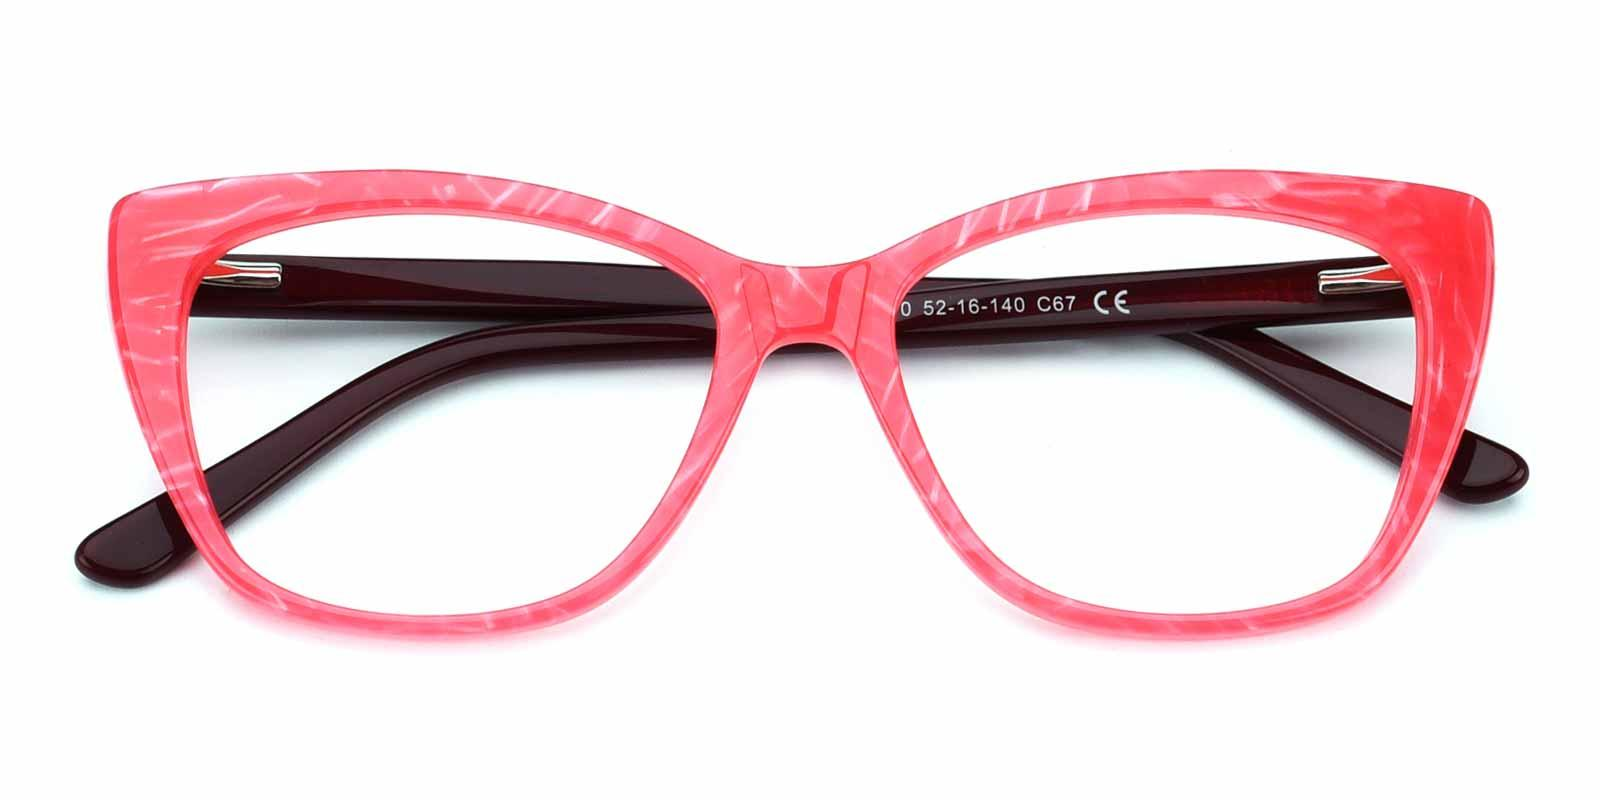 Kiko-Purple-Cat-Acetate-Eyeglasses-detail